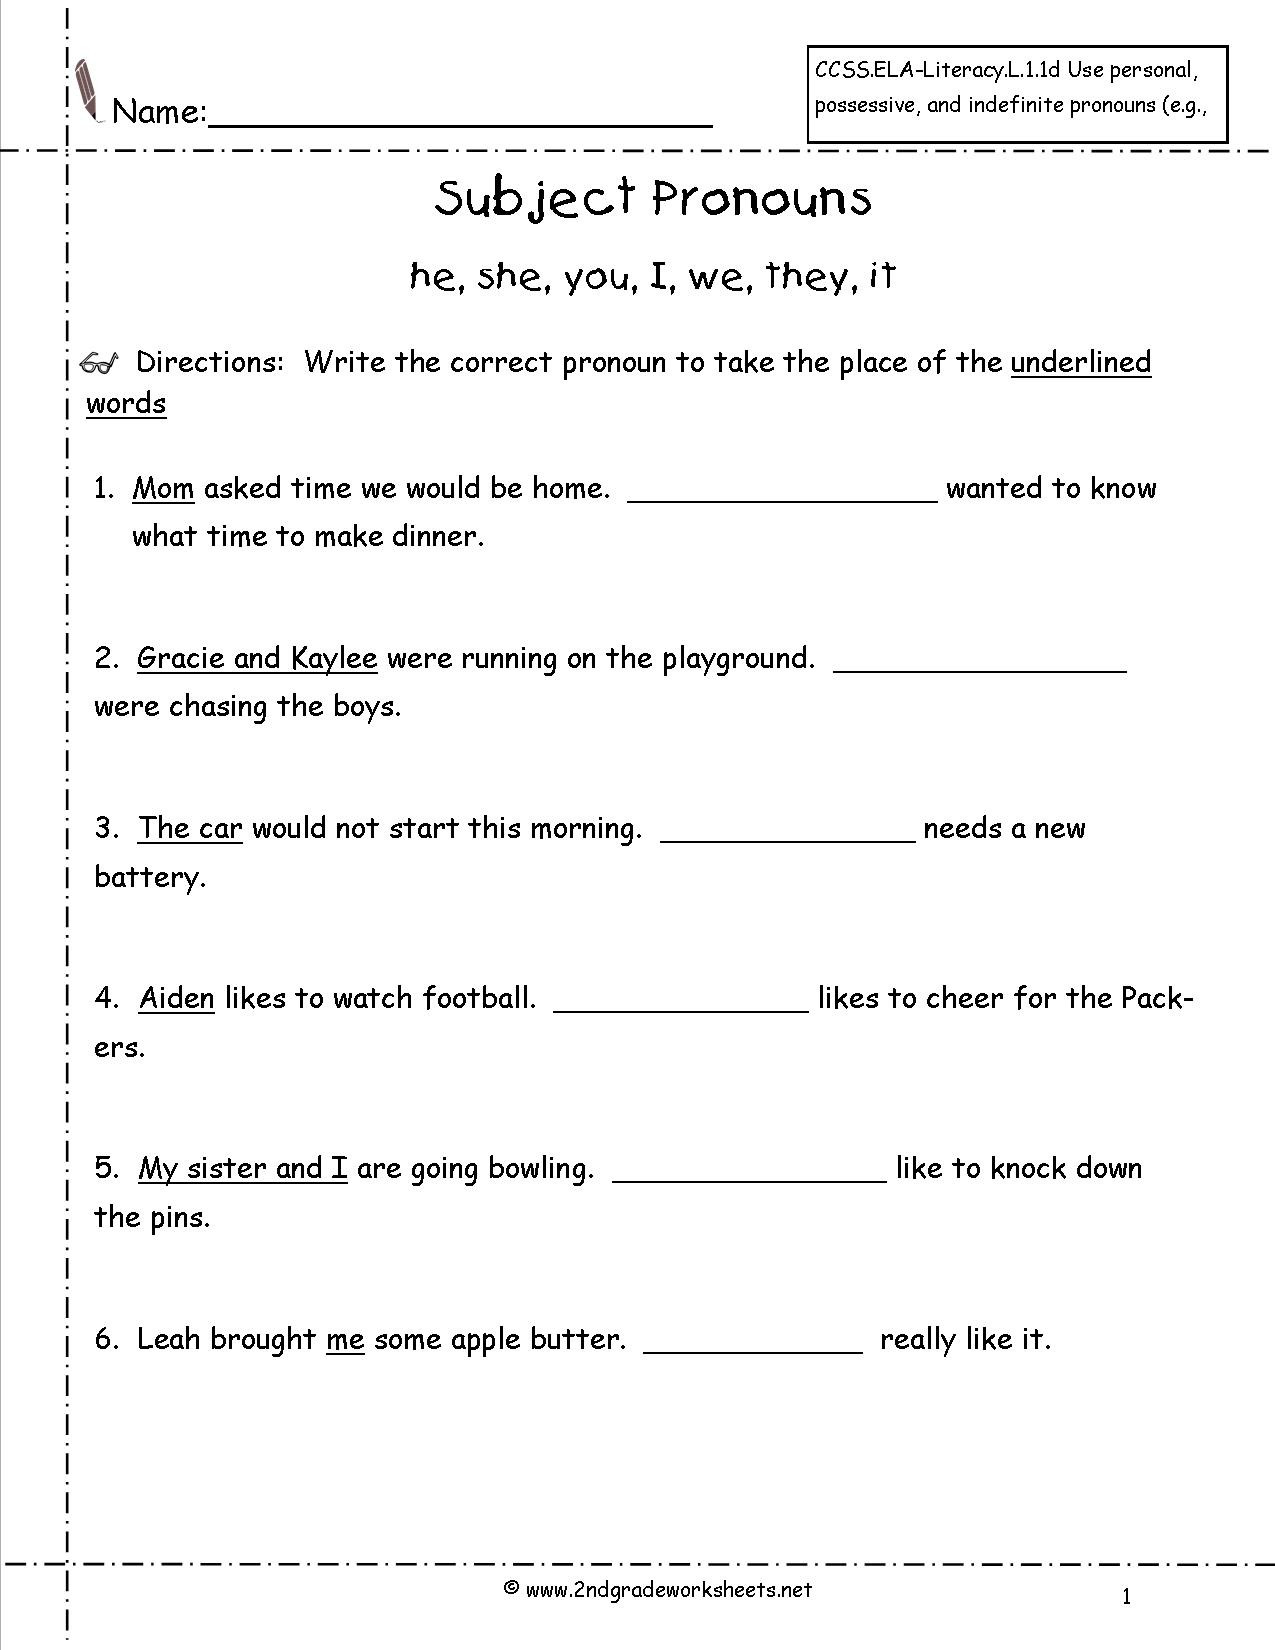 Second Grade Pronouns Worksheet Subject Pronouns Worksheets Kindergarten